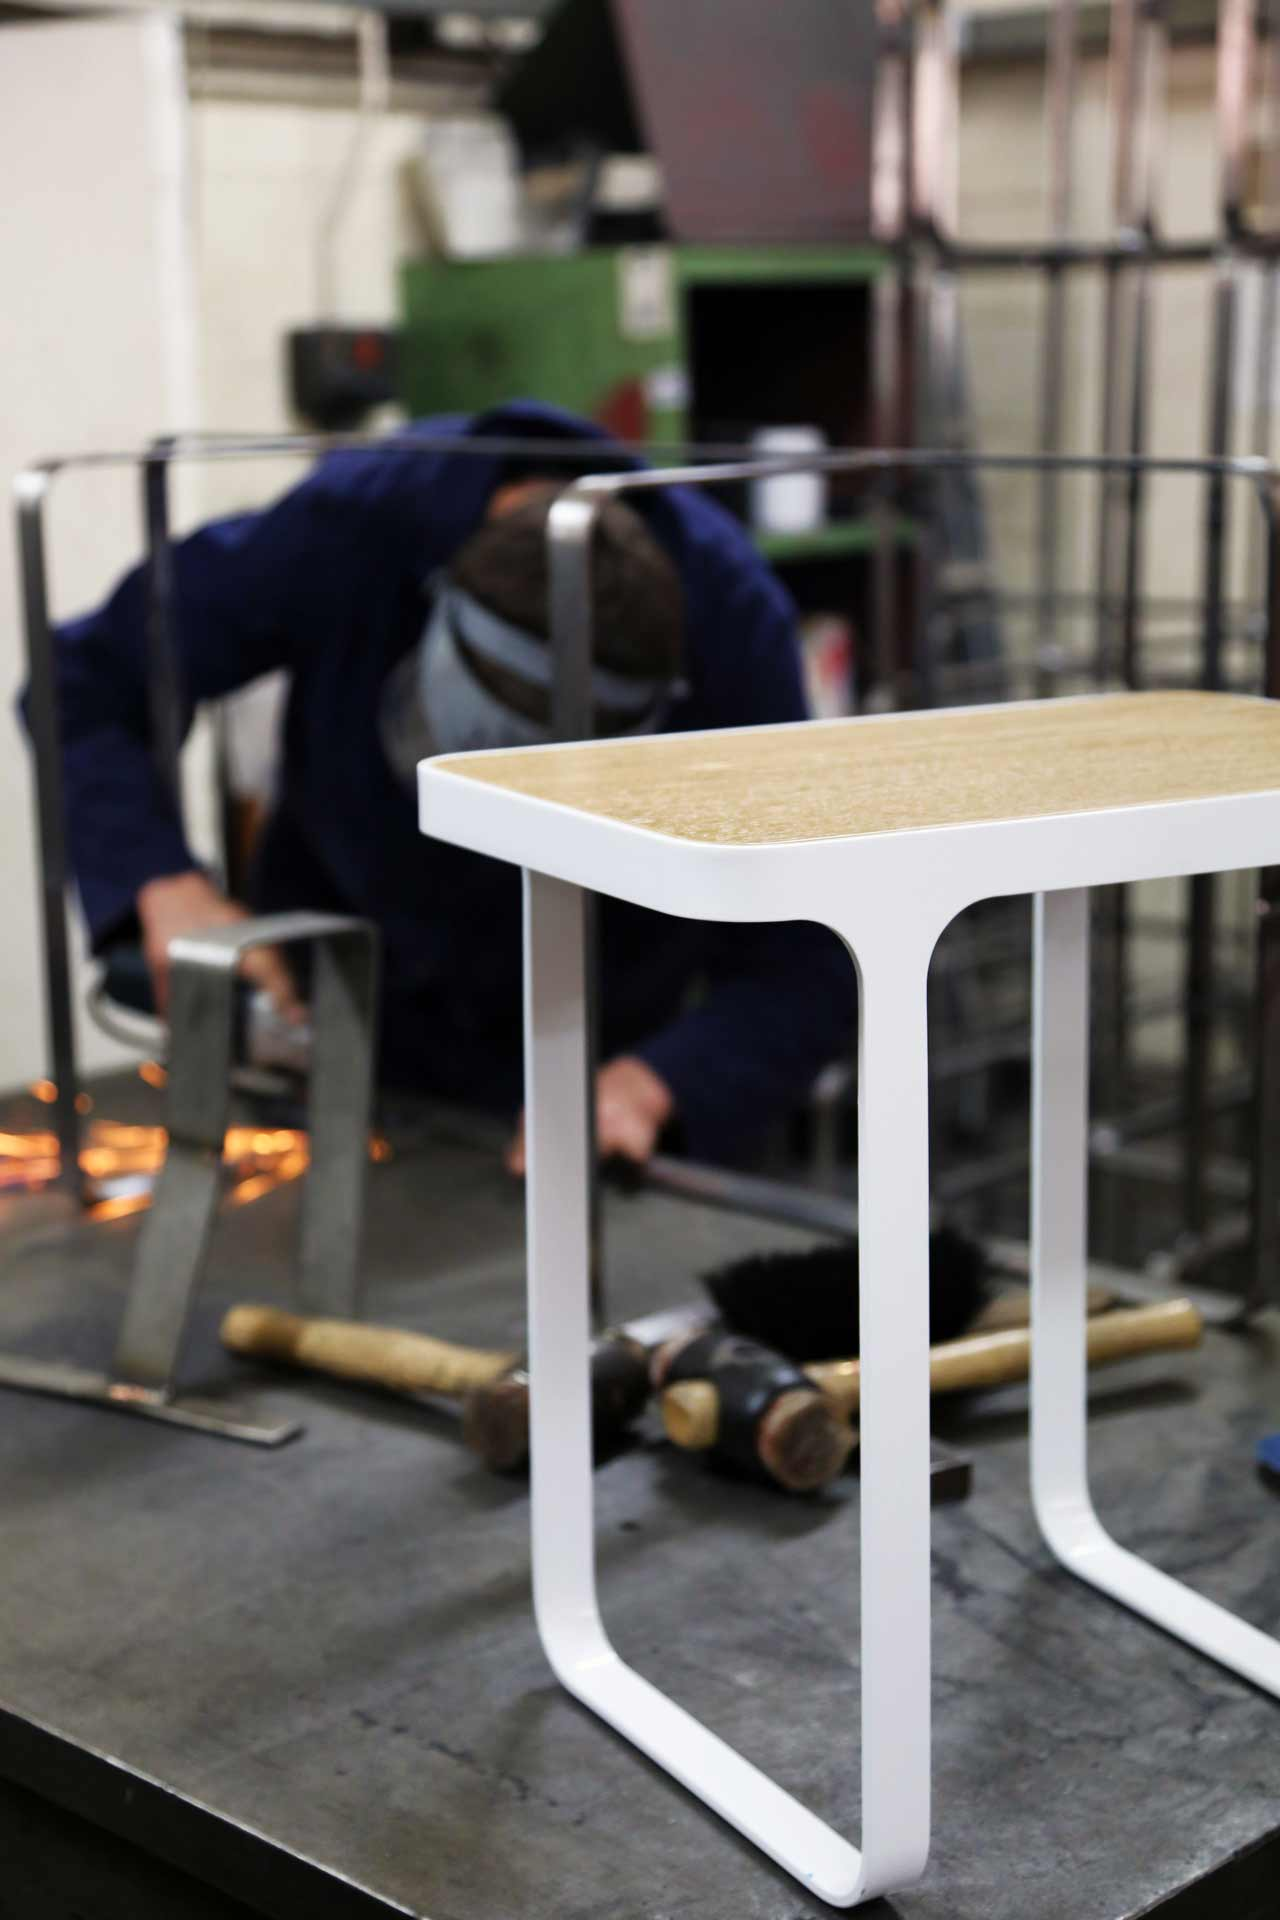 trace-table-finish-product-and-in-production